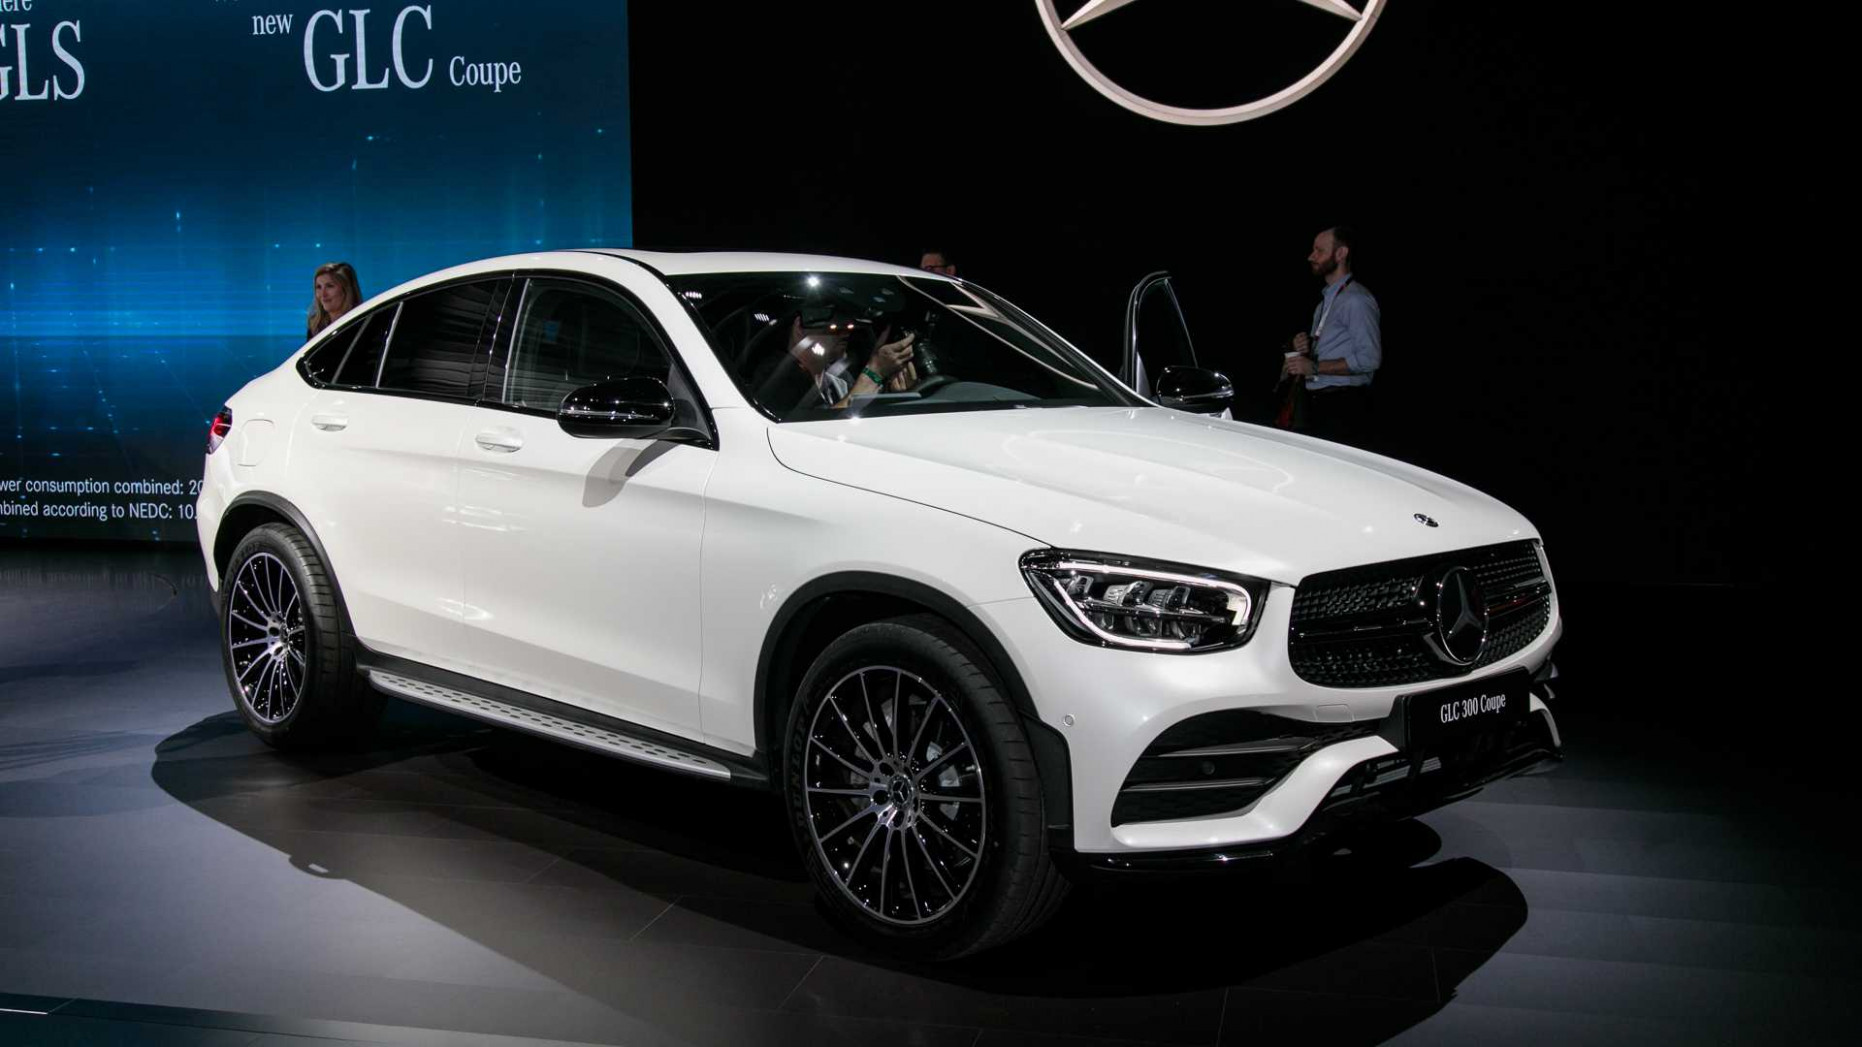 7 Mercedes-Benz GLC Coupe Gets Refreshed Face, More Power [UPDATE] - mercedes glc 2020 release date